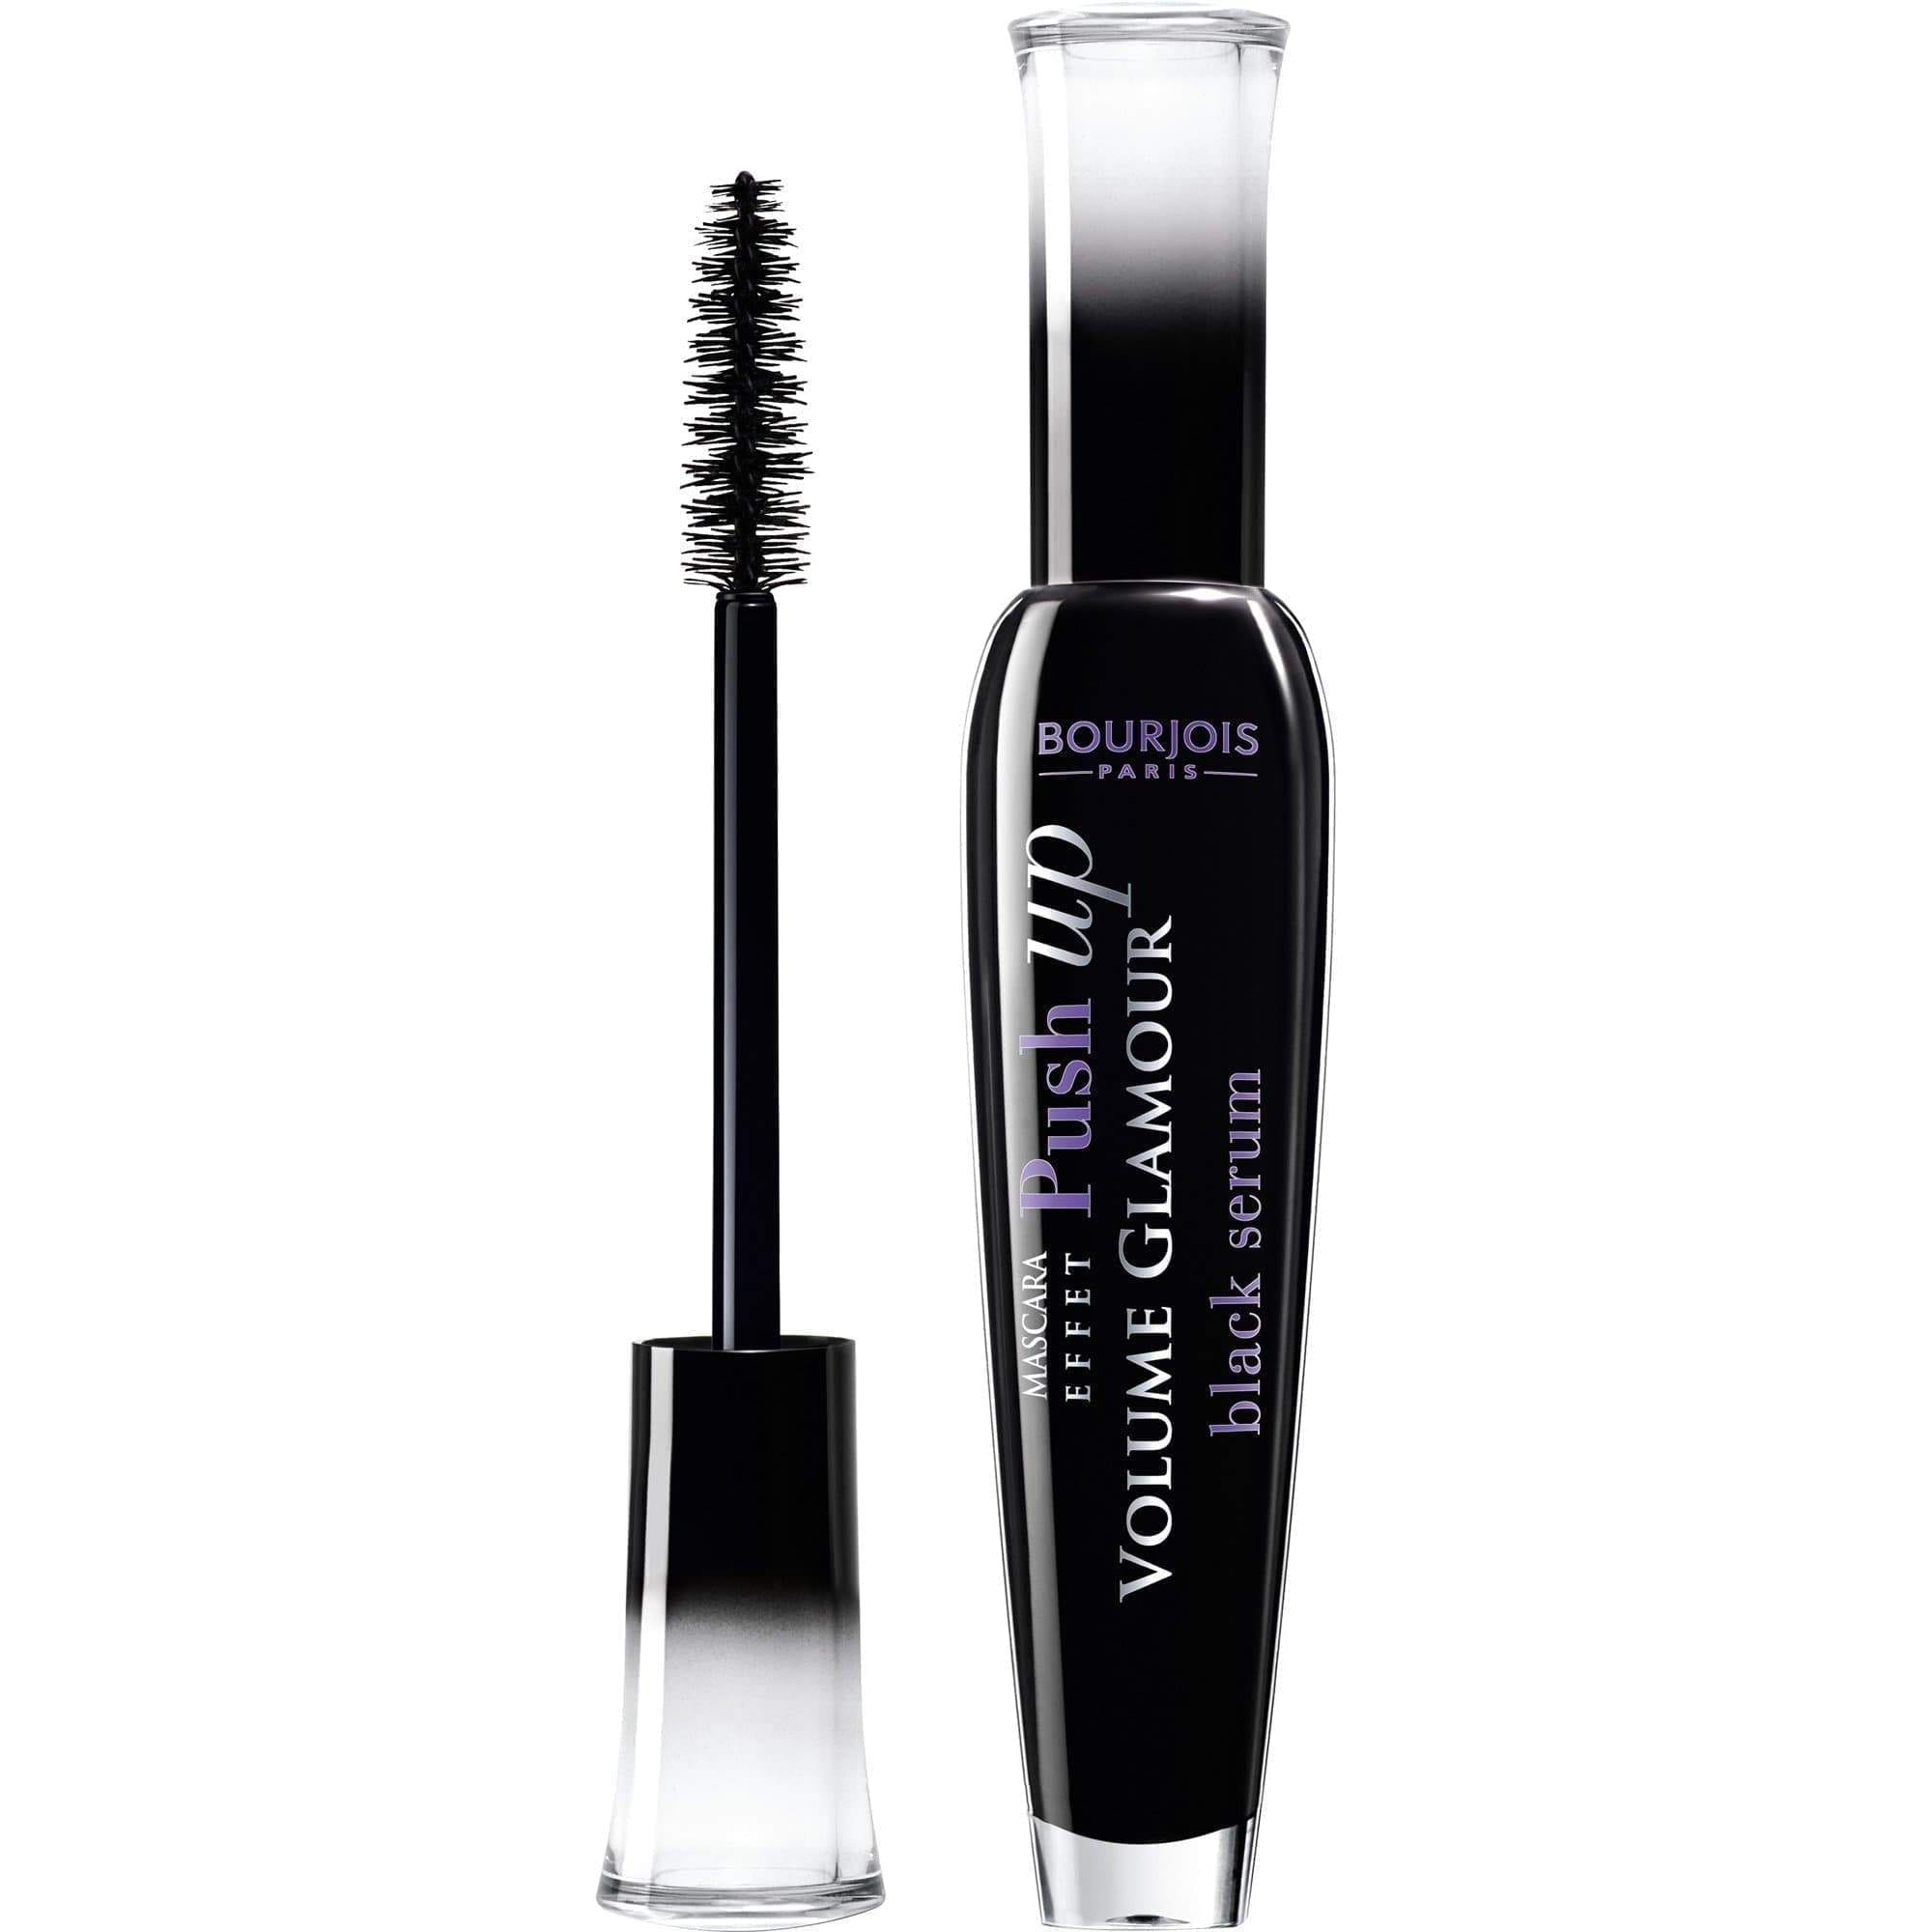 Bourjois_Mascara_Volume_Glamour_Push_Up_Black_Serum